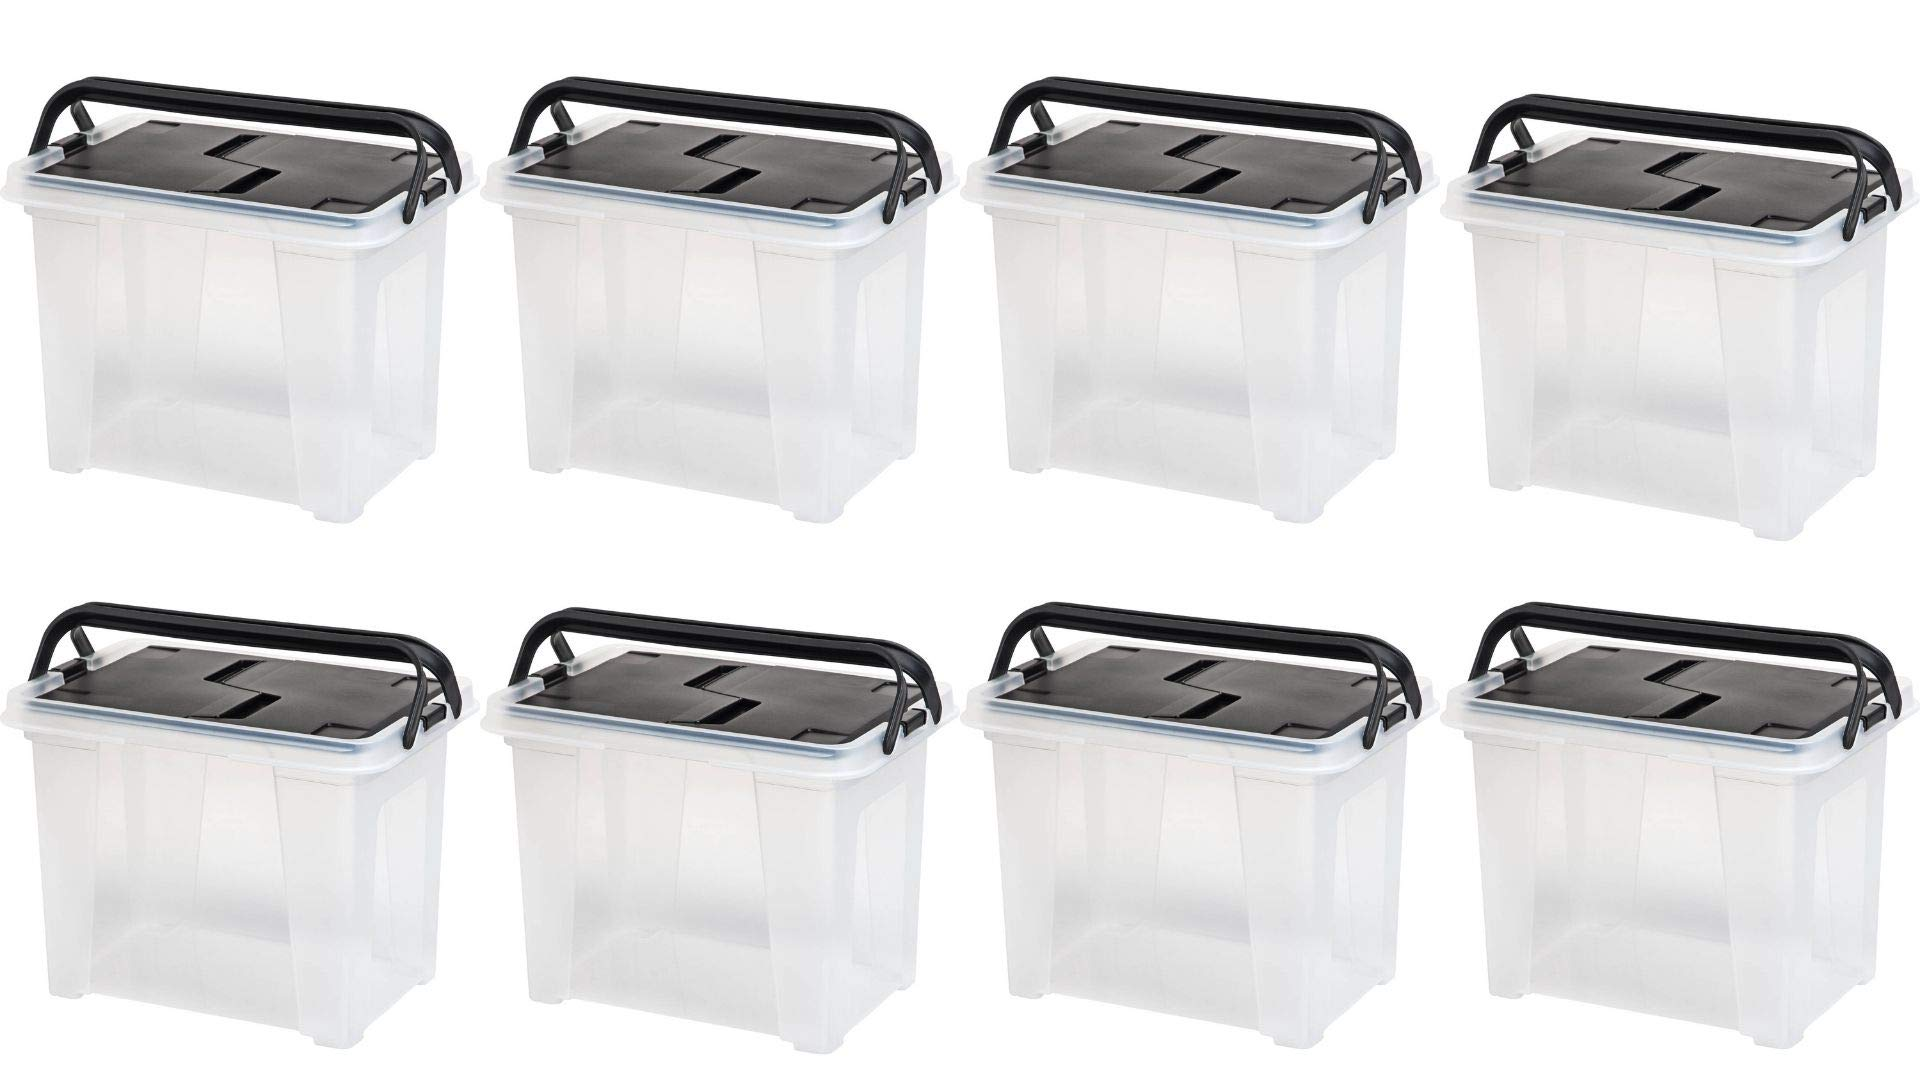 IRIS Letter Size Portable Hanging File Storage Box with Black Wing Lid, Set of 8